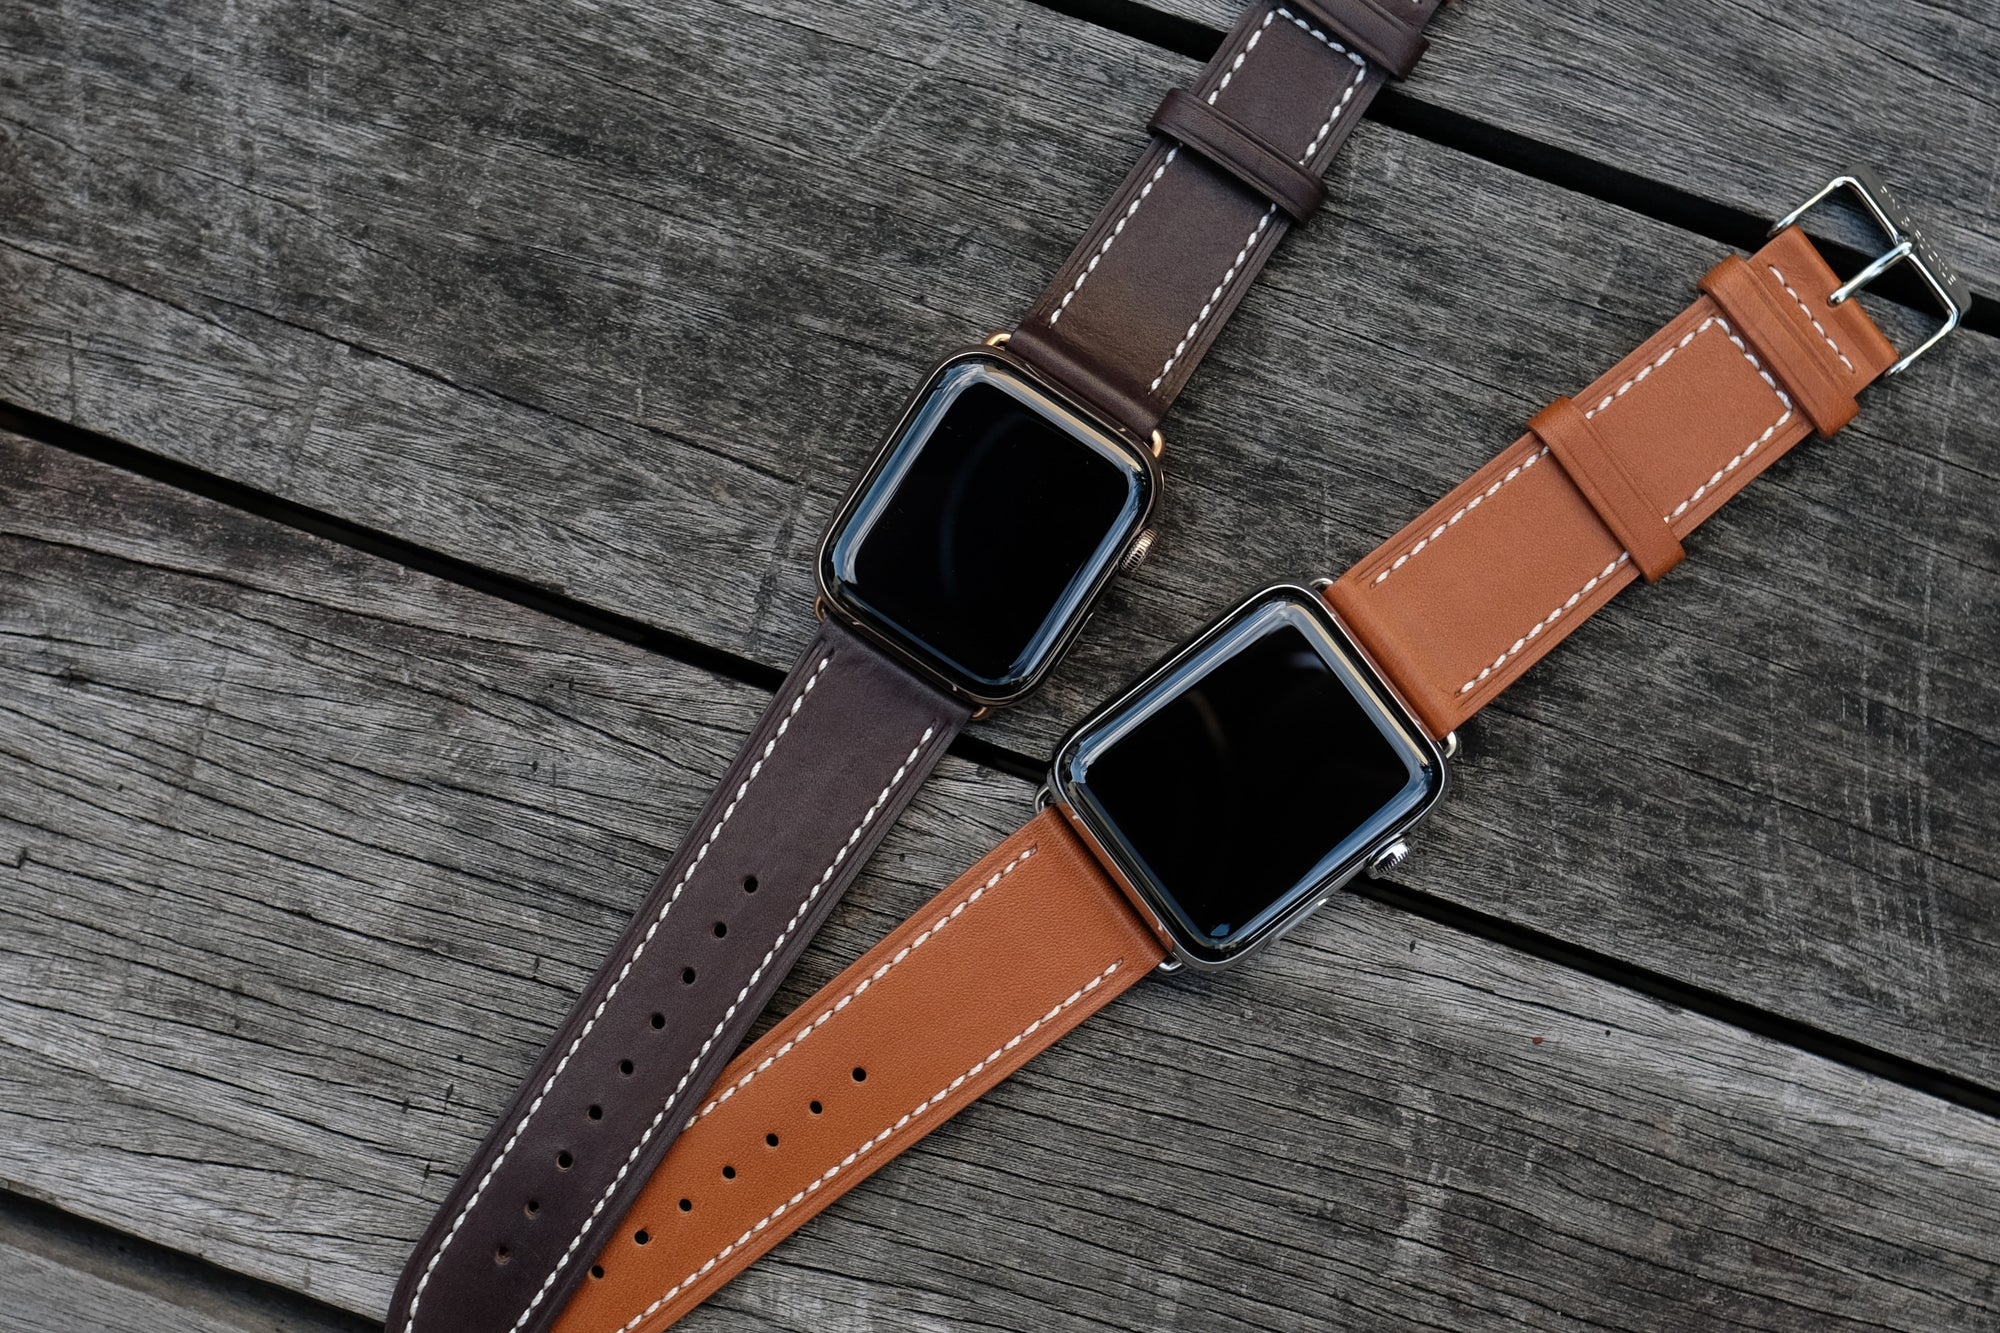 Barenia Leather Apple Watch Bands by Pin & Buckle